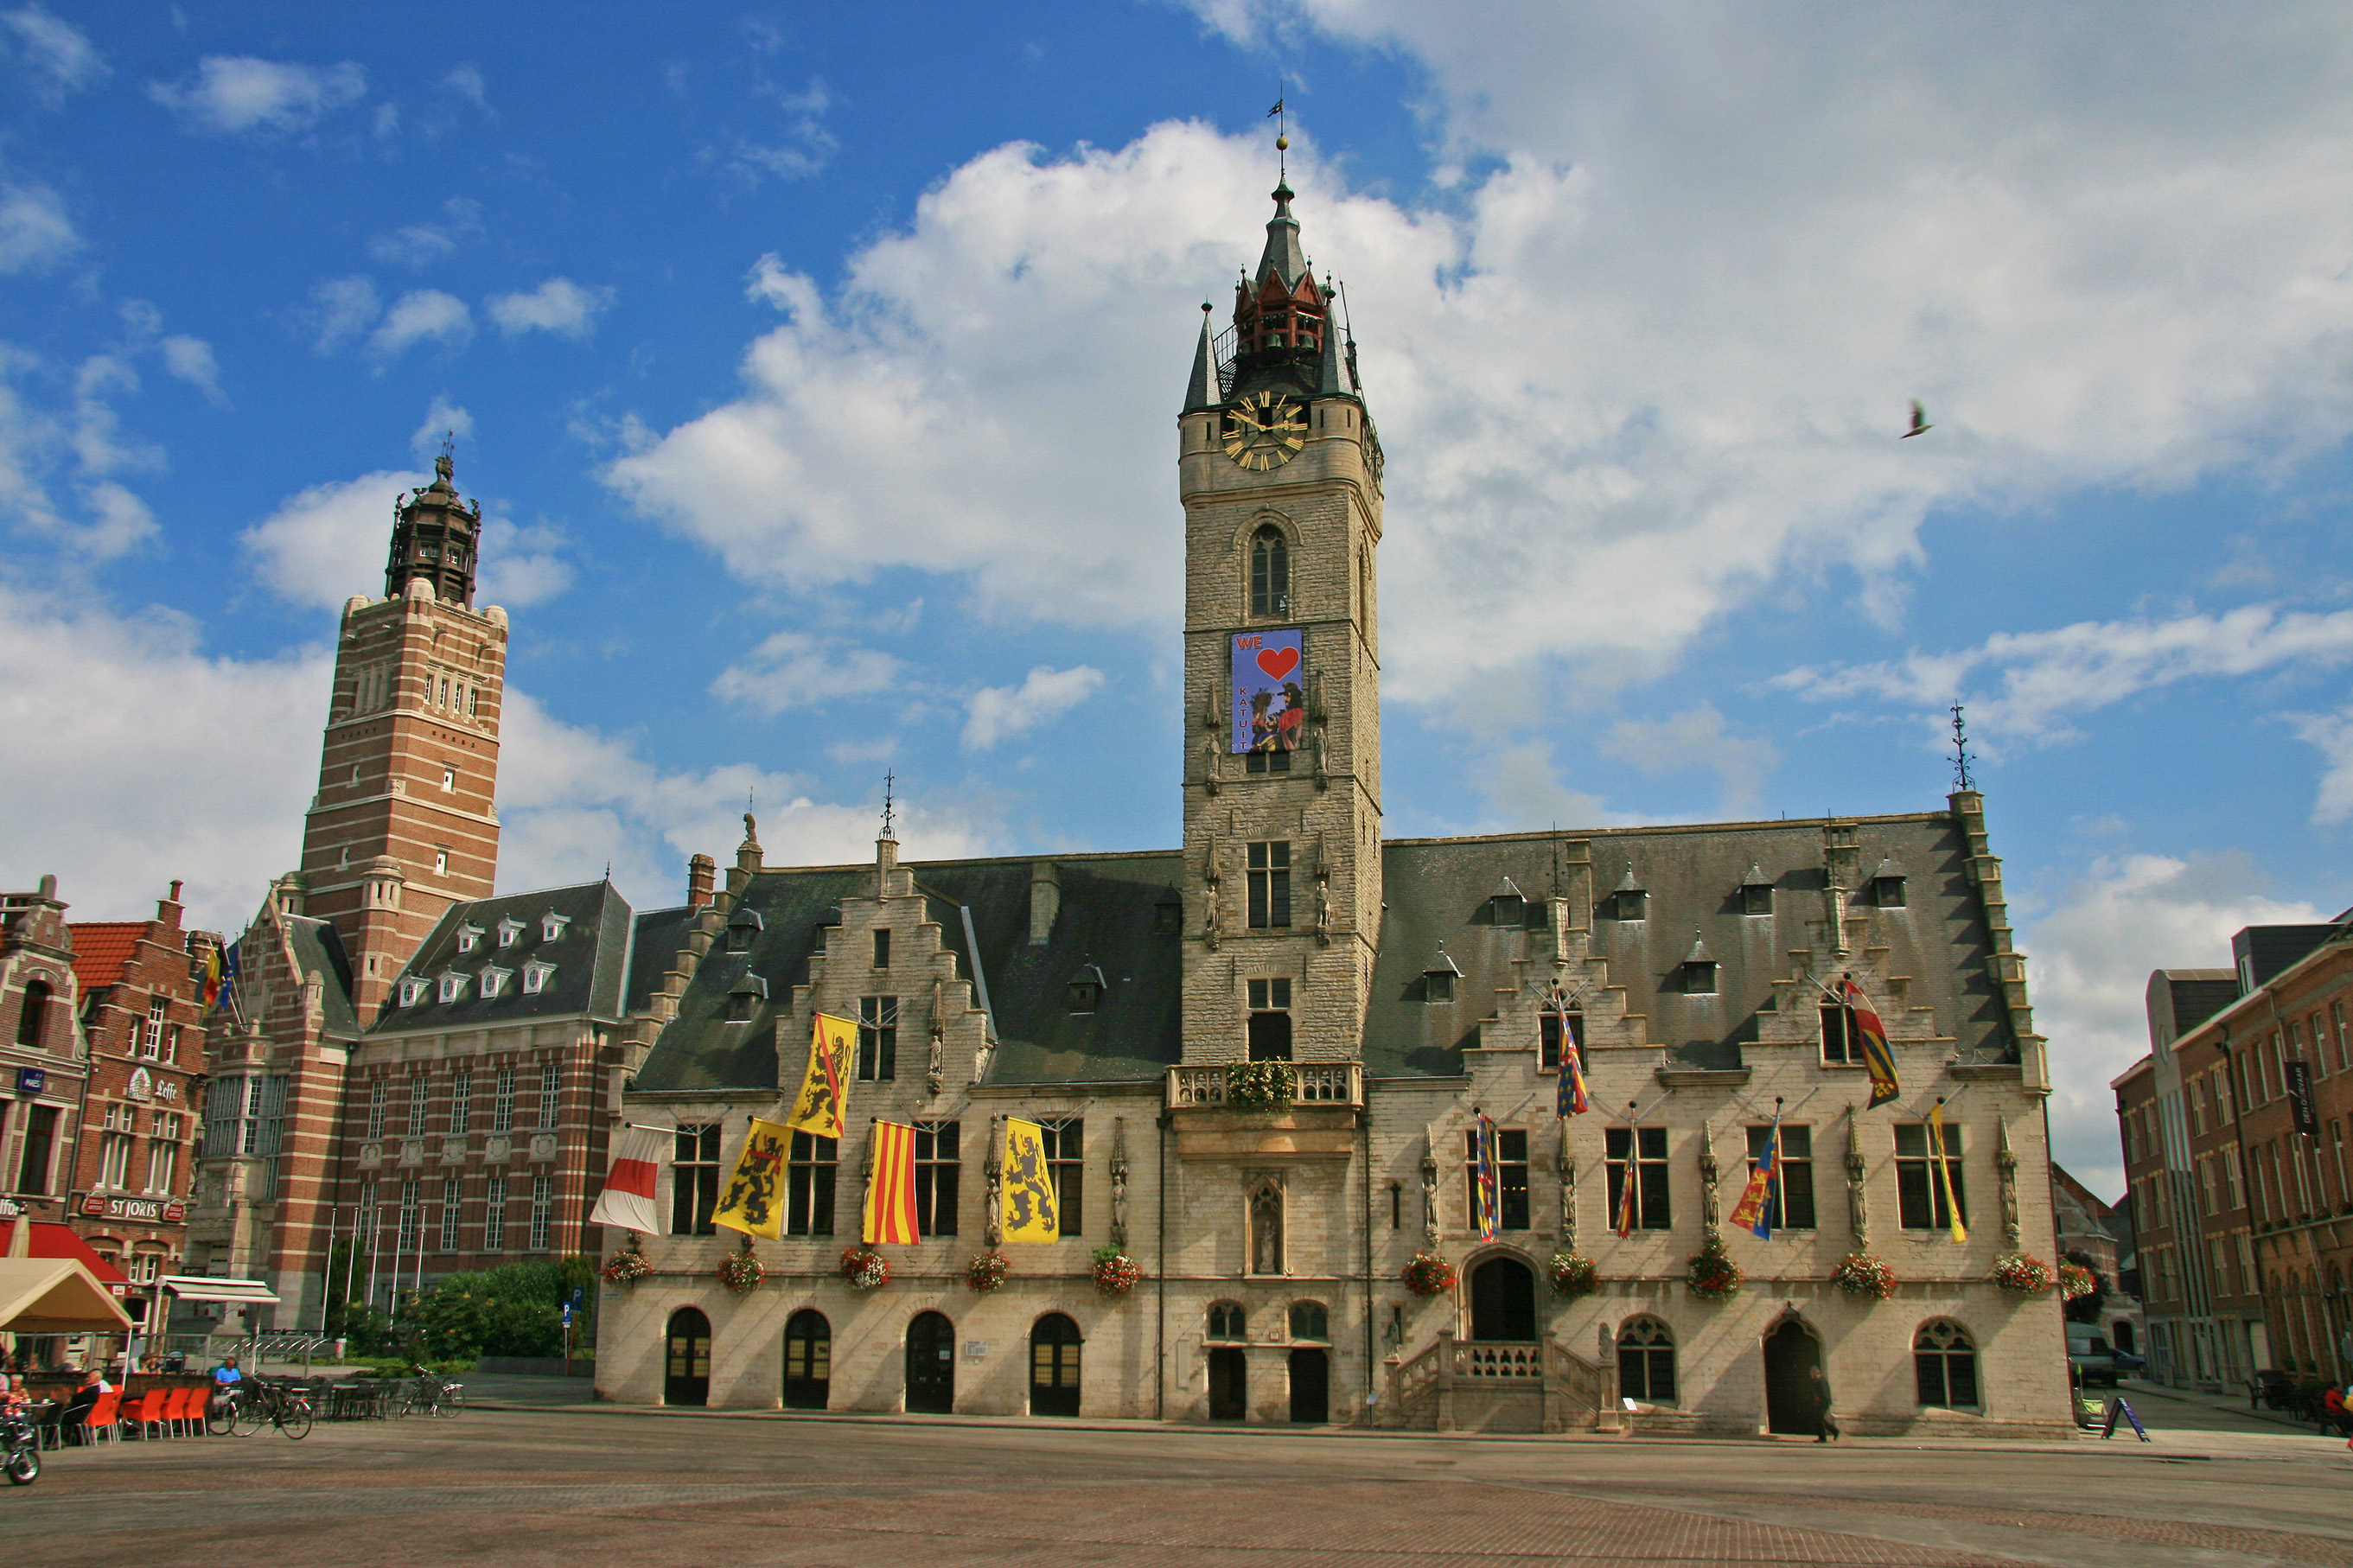 The belfry of Dendermonde shows that a belfry is not always an isolated tower.